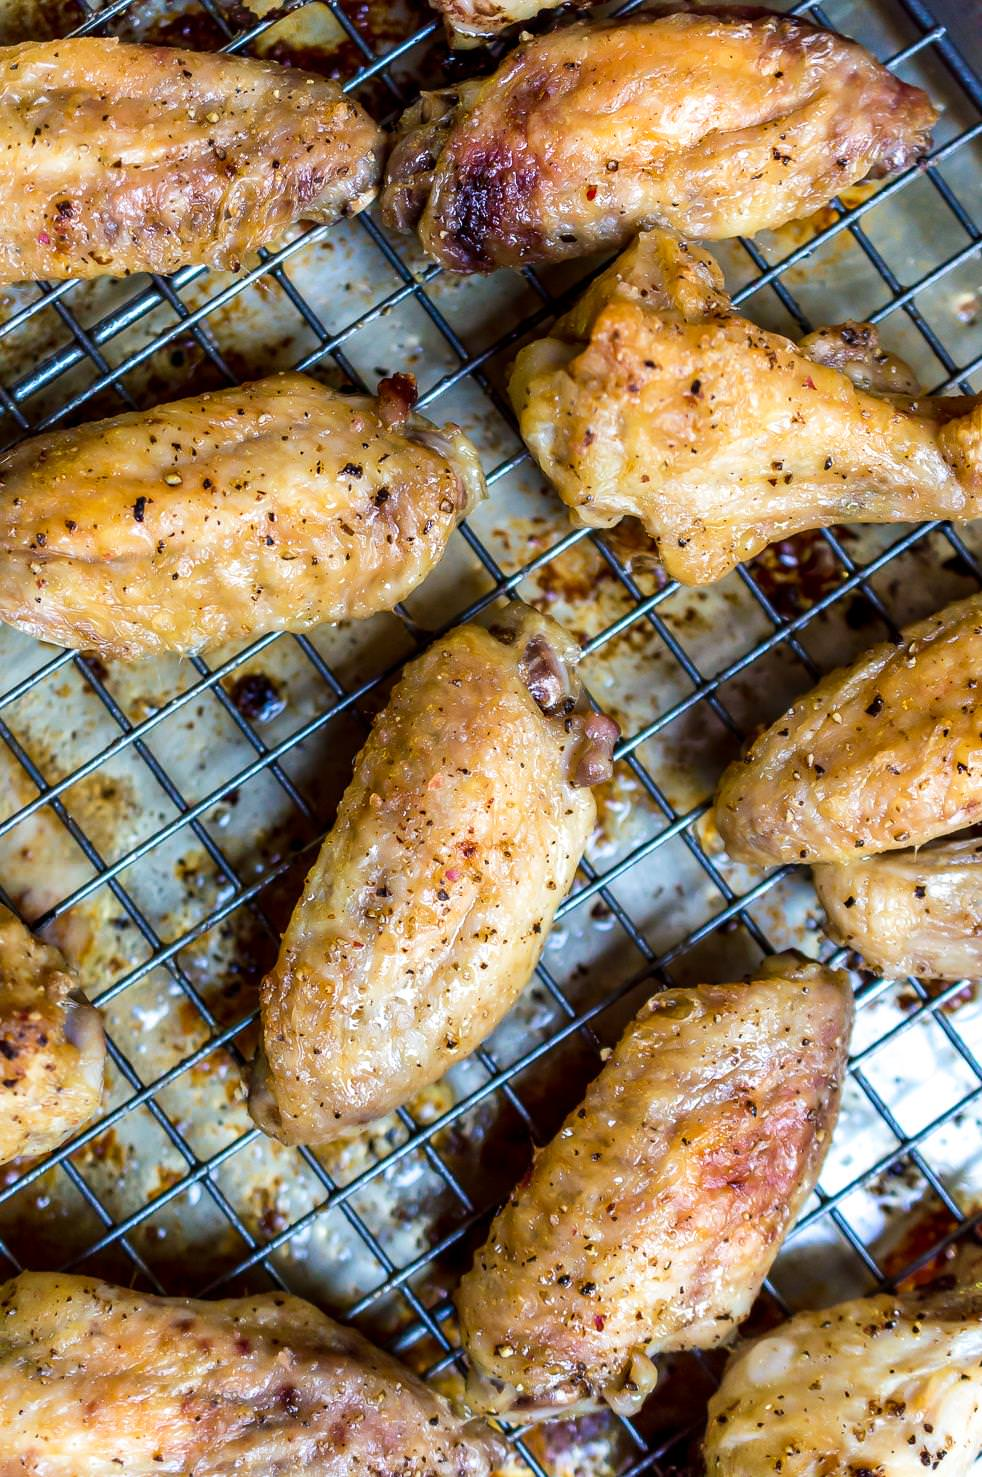 Oven Baked Chicken Wings Wonkywonderful